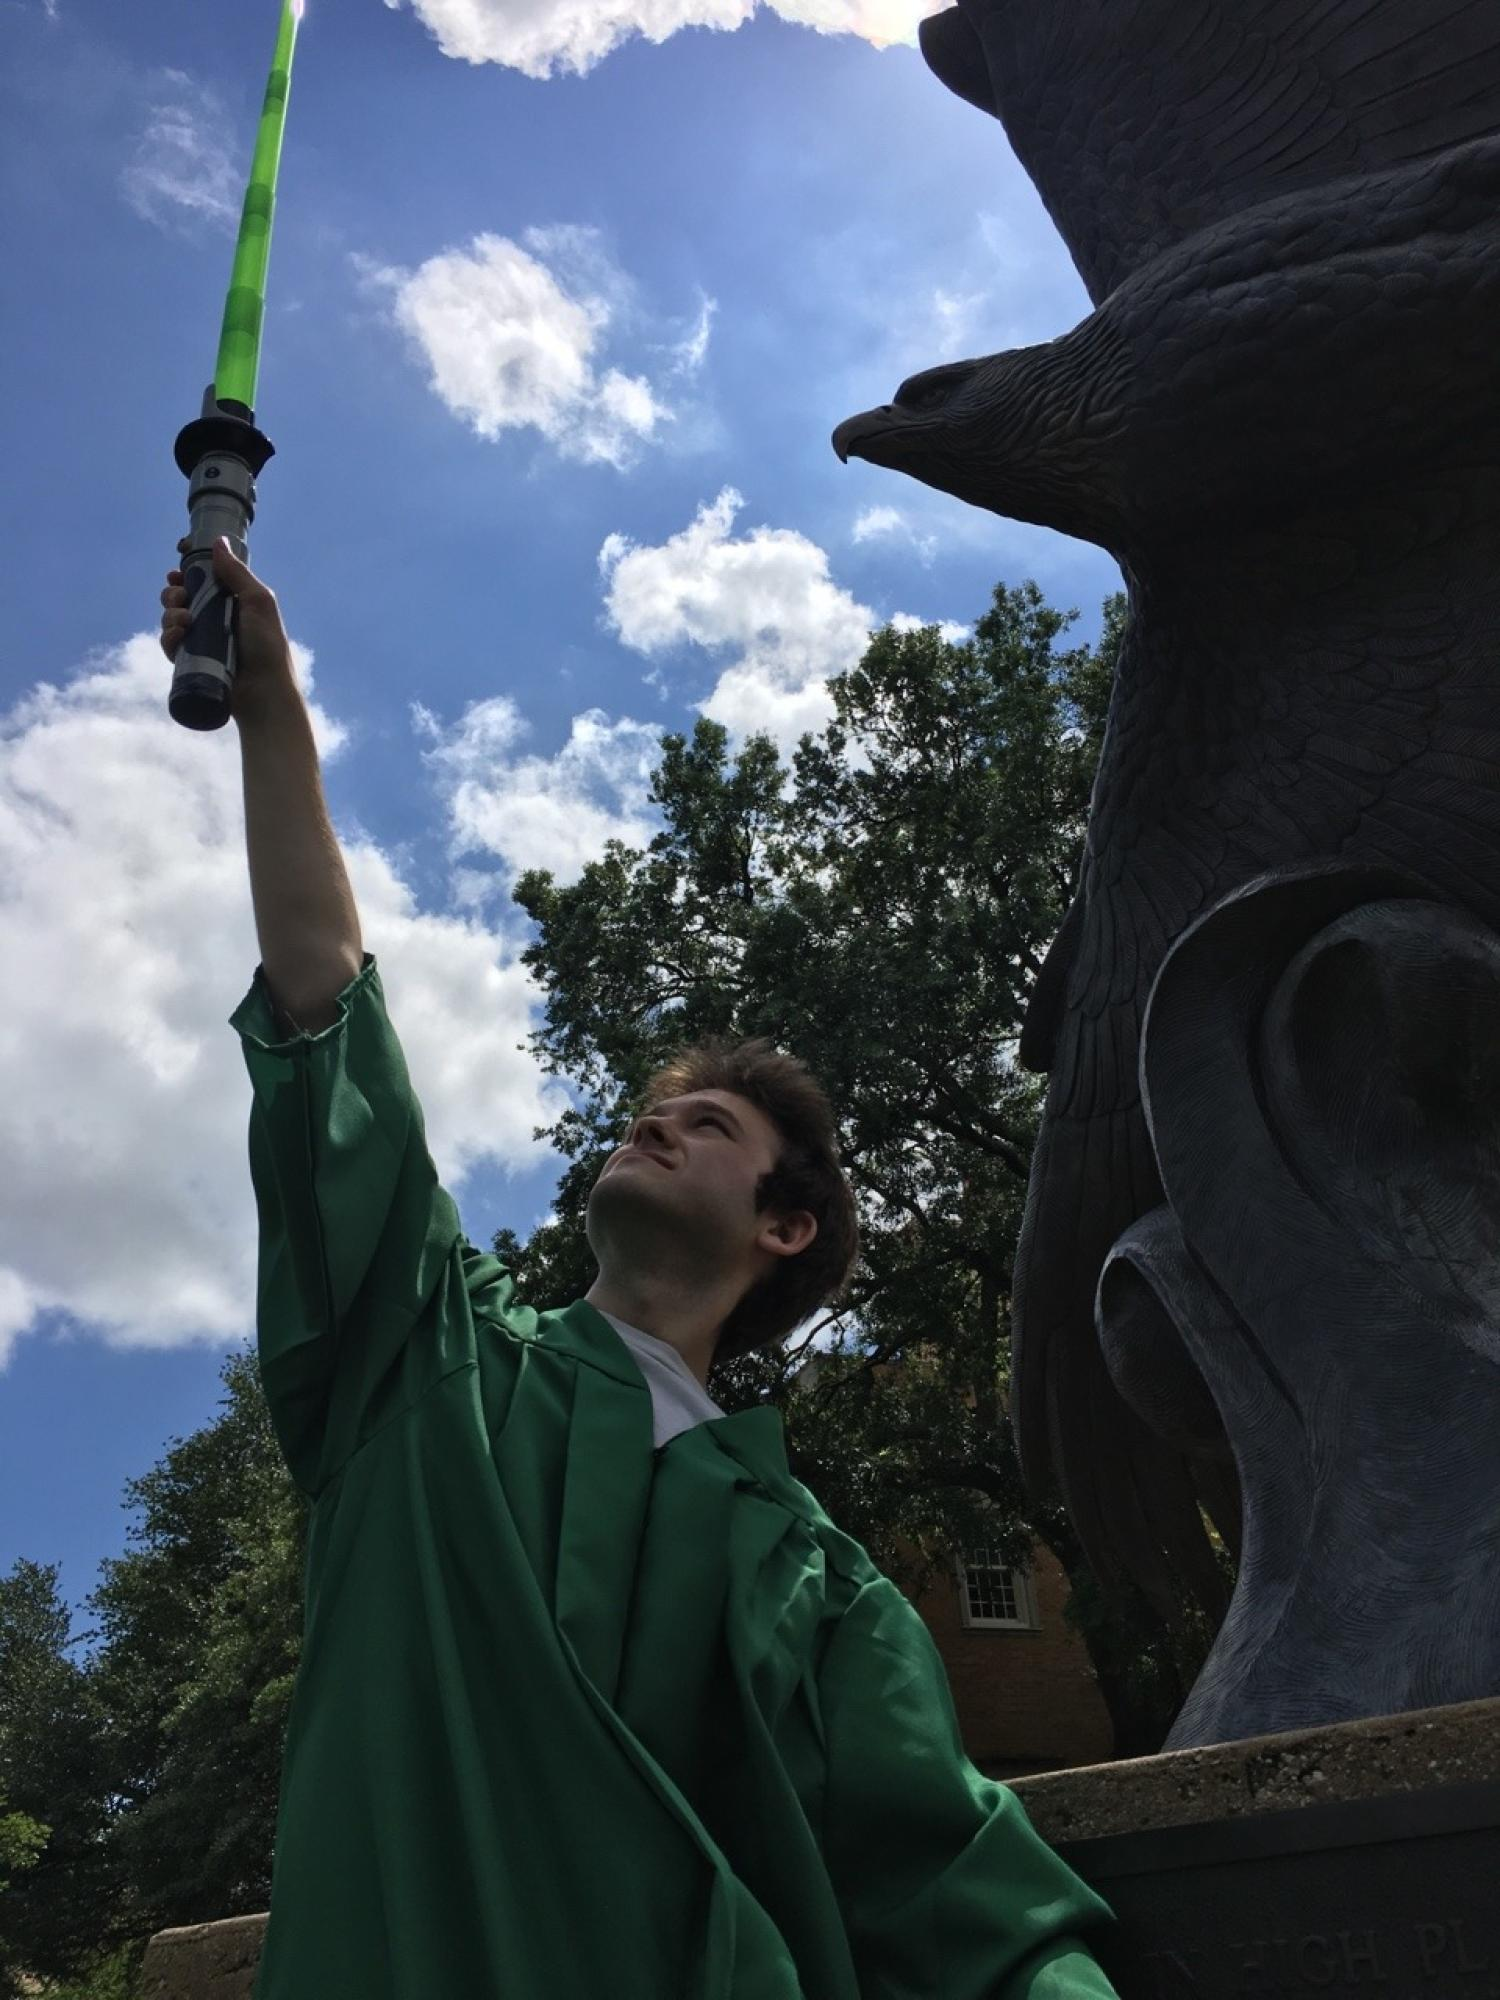 Man in green graduation robe holds a toy lightsaber in the air outdoors. Part of a large flying eagle statue is next to him. Both look upwards.